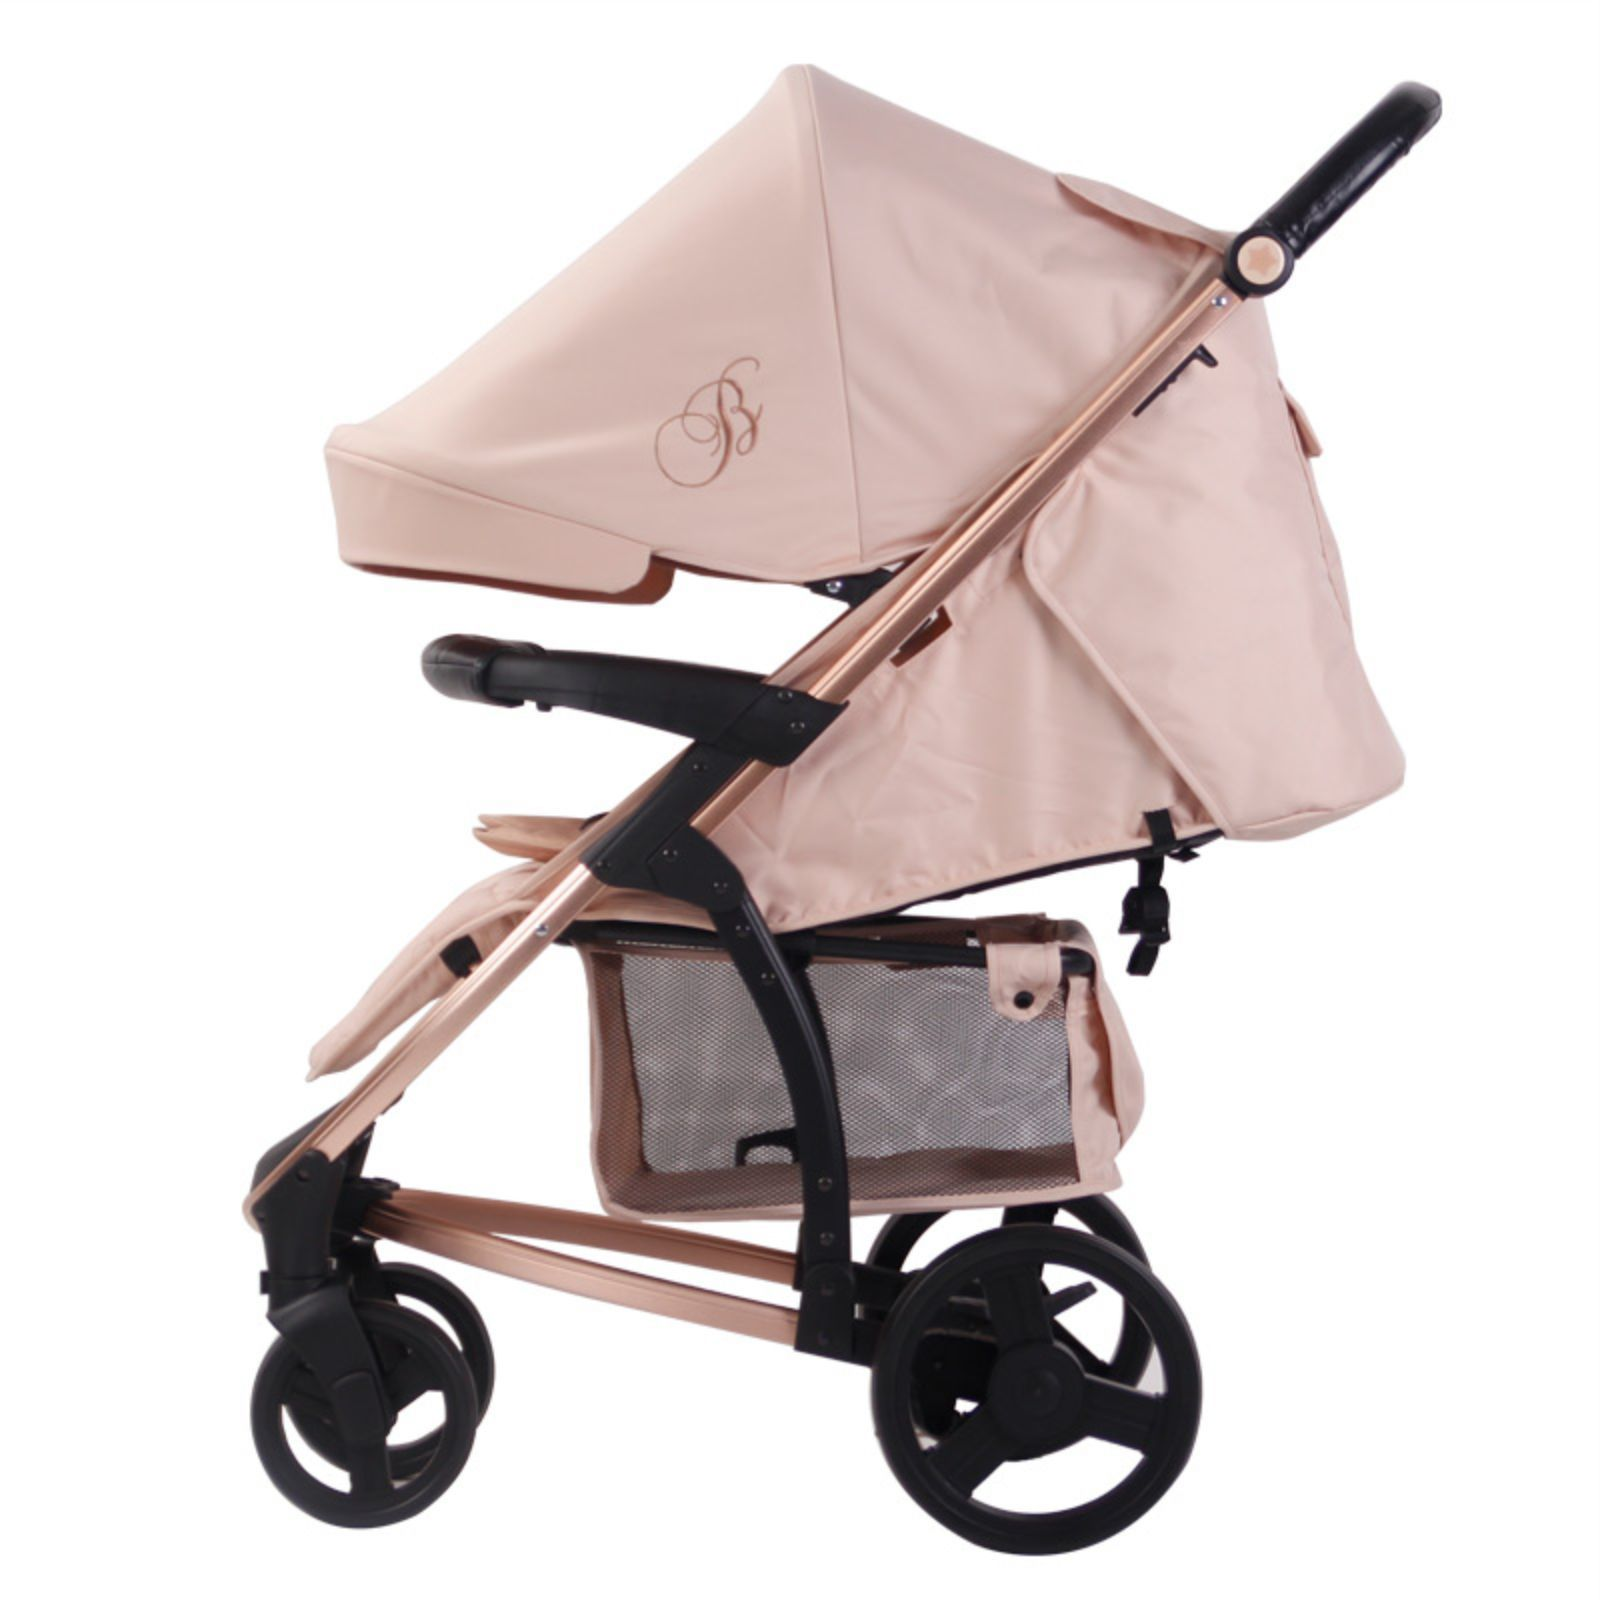 My Babiie MB200+ *Billie Faiers Collection* Travel System